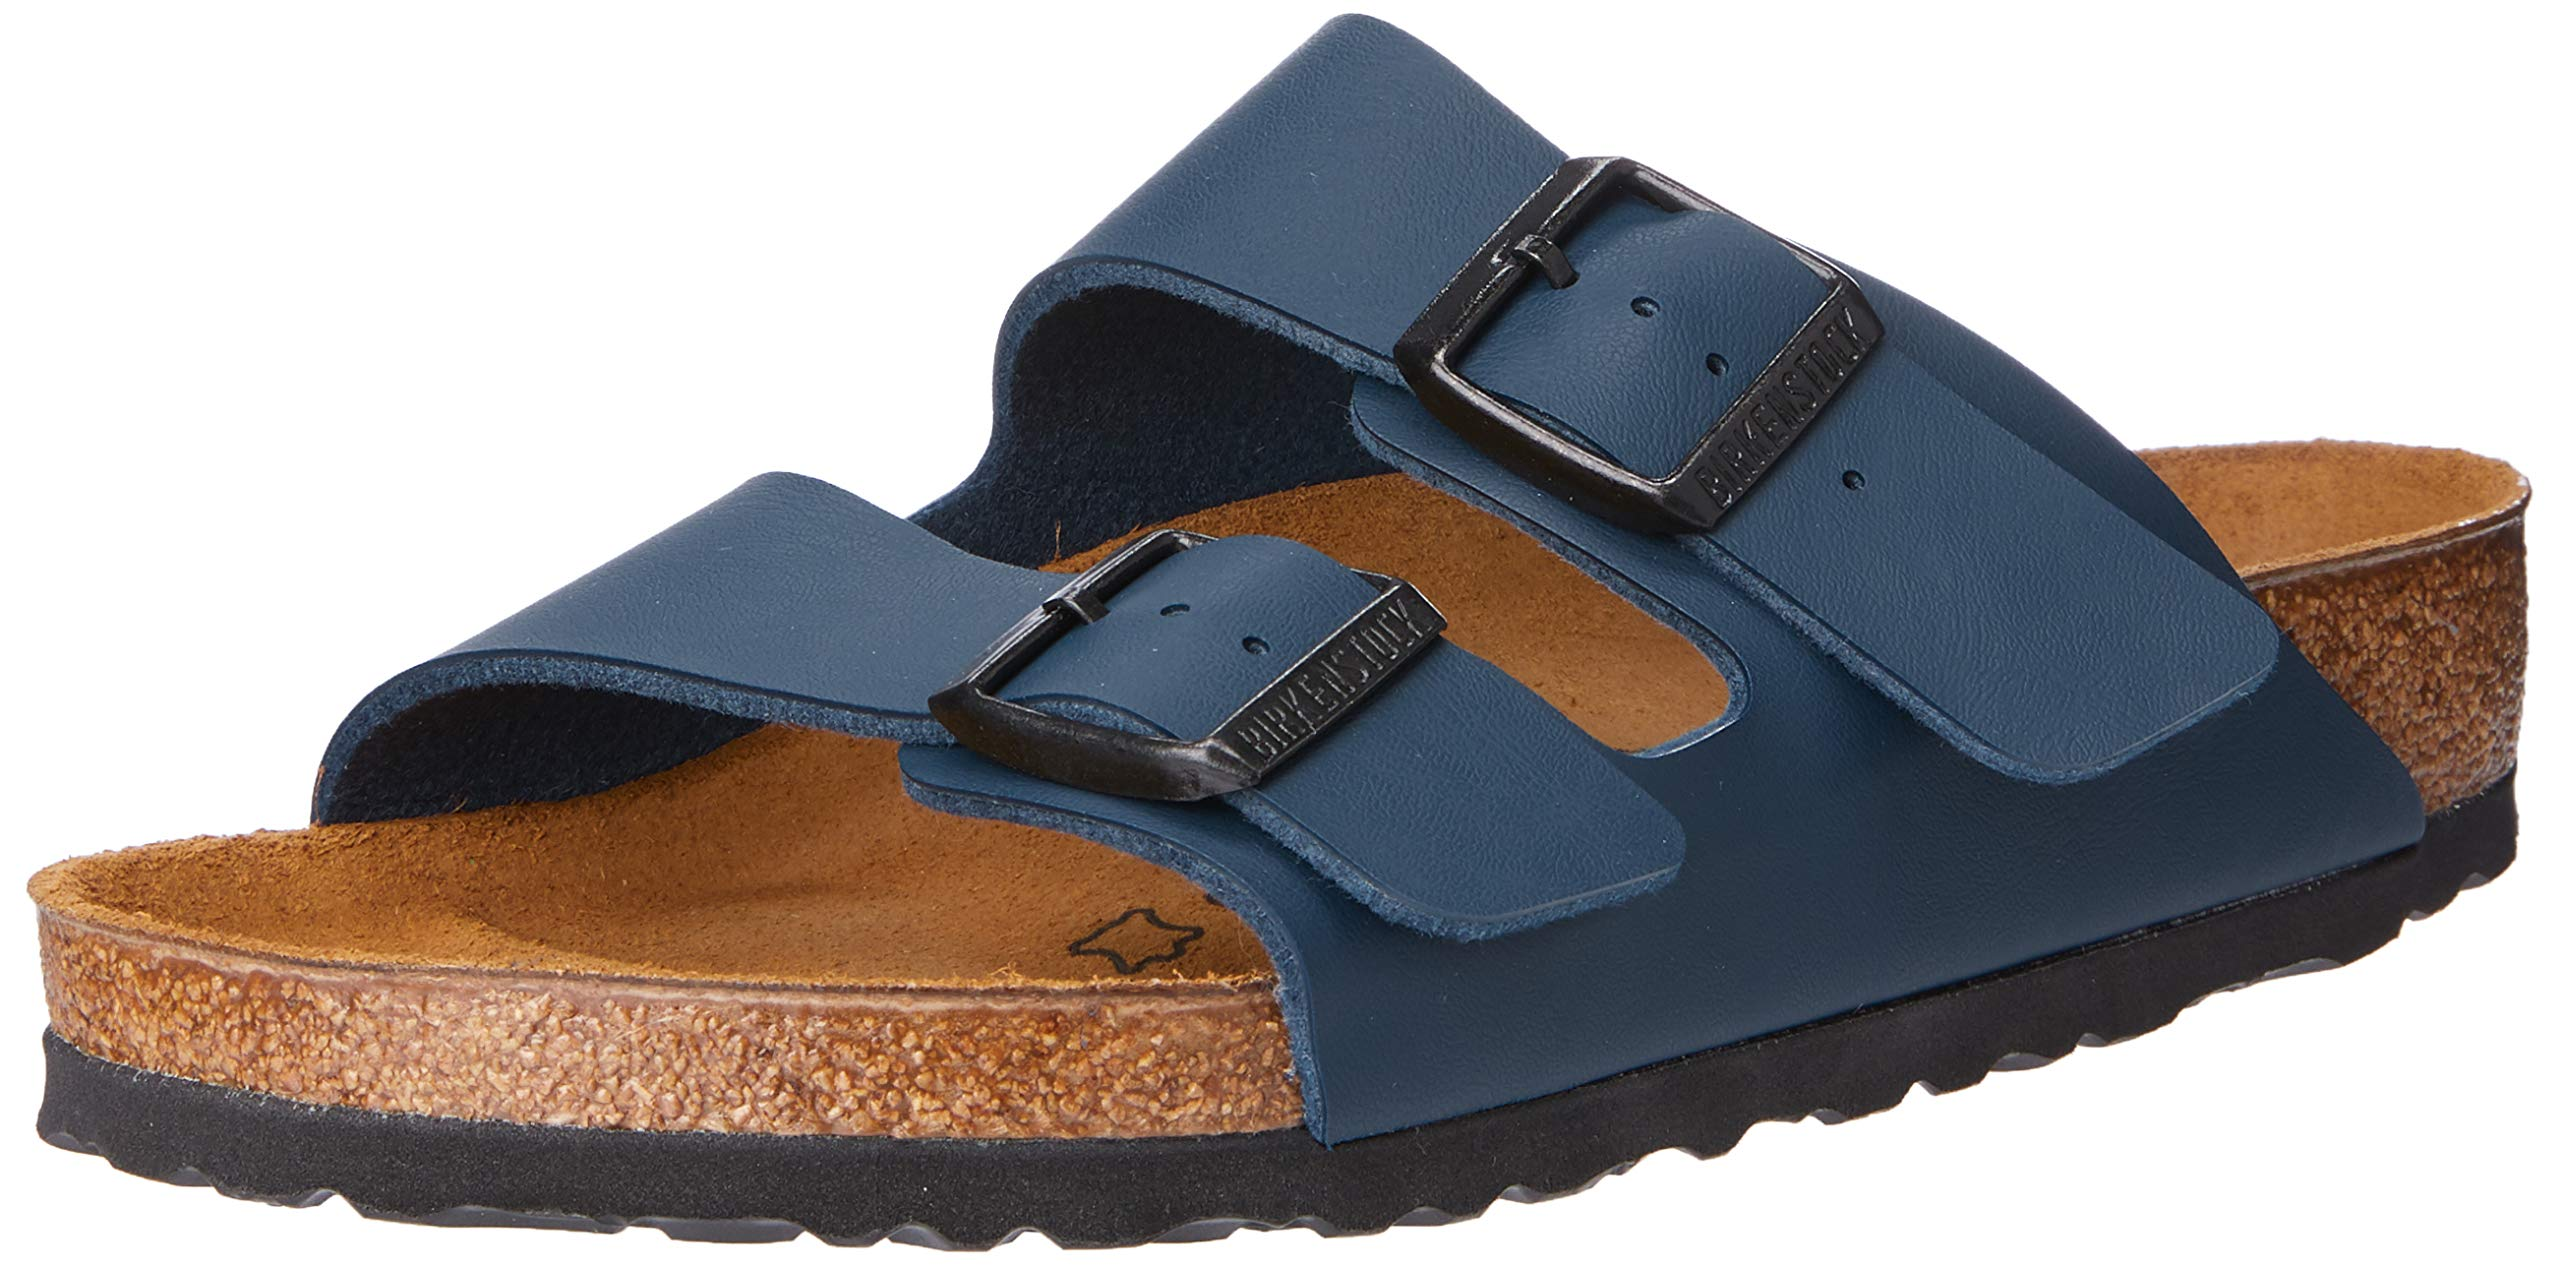 Birkenstock Unisex Arizona Blue Birko Flor Sandals - 8-8.5 B(M) US Women by Birkenstock